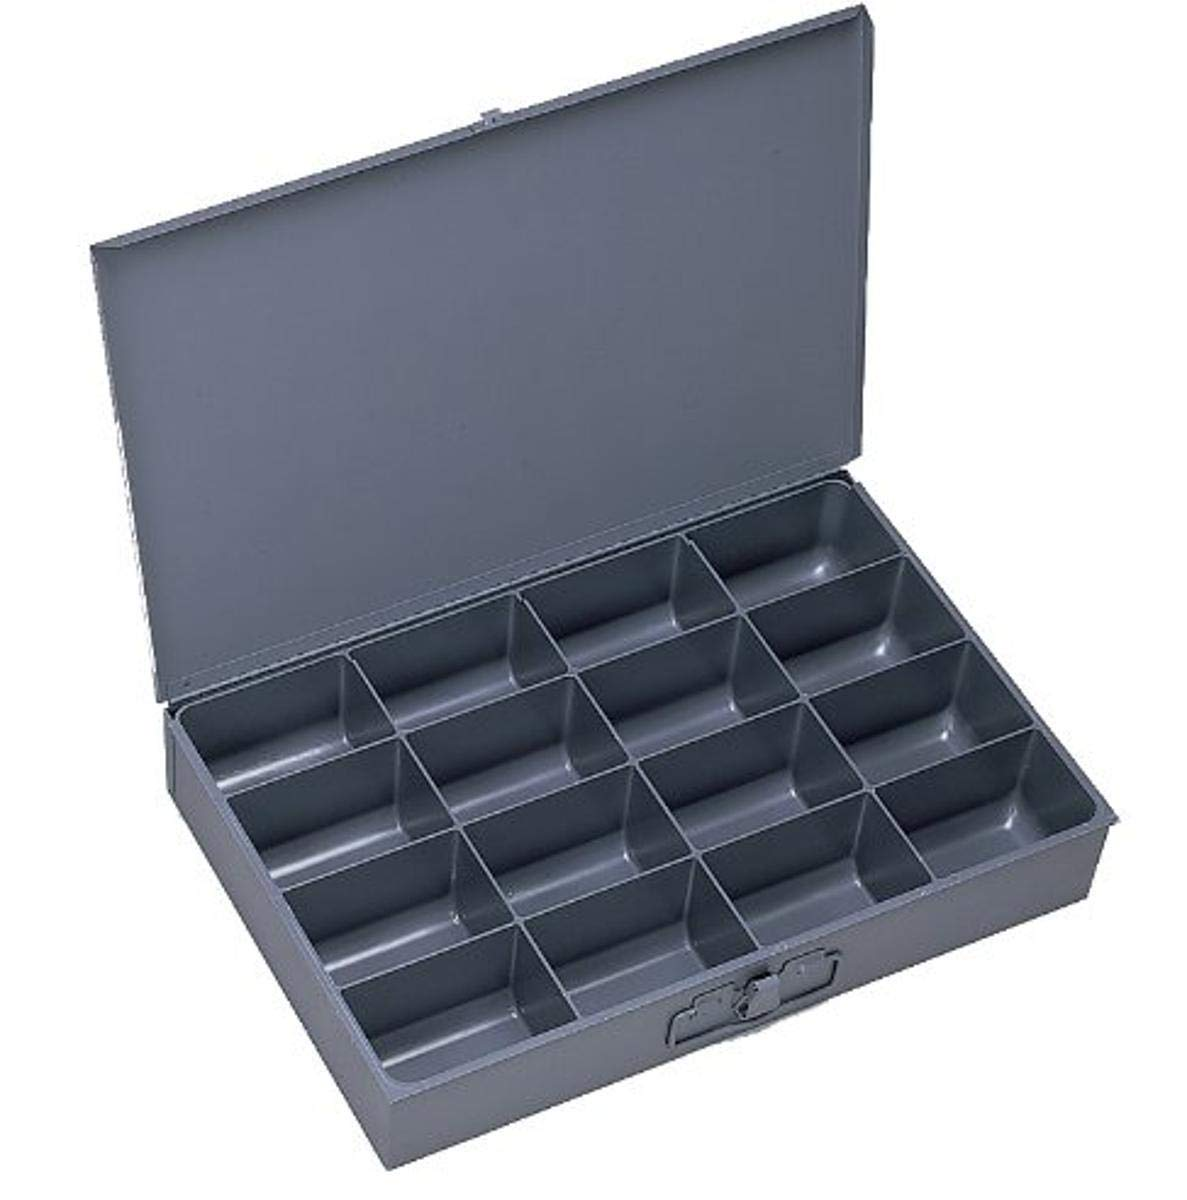 Durham 113-95-IND Gray Cold Rolled Steel Individual Large Scoop Box, 18 Width x 3 Height x 12 Depth, 16 Compartment